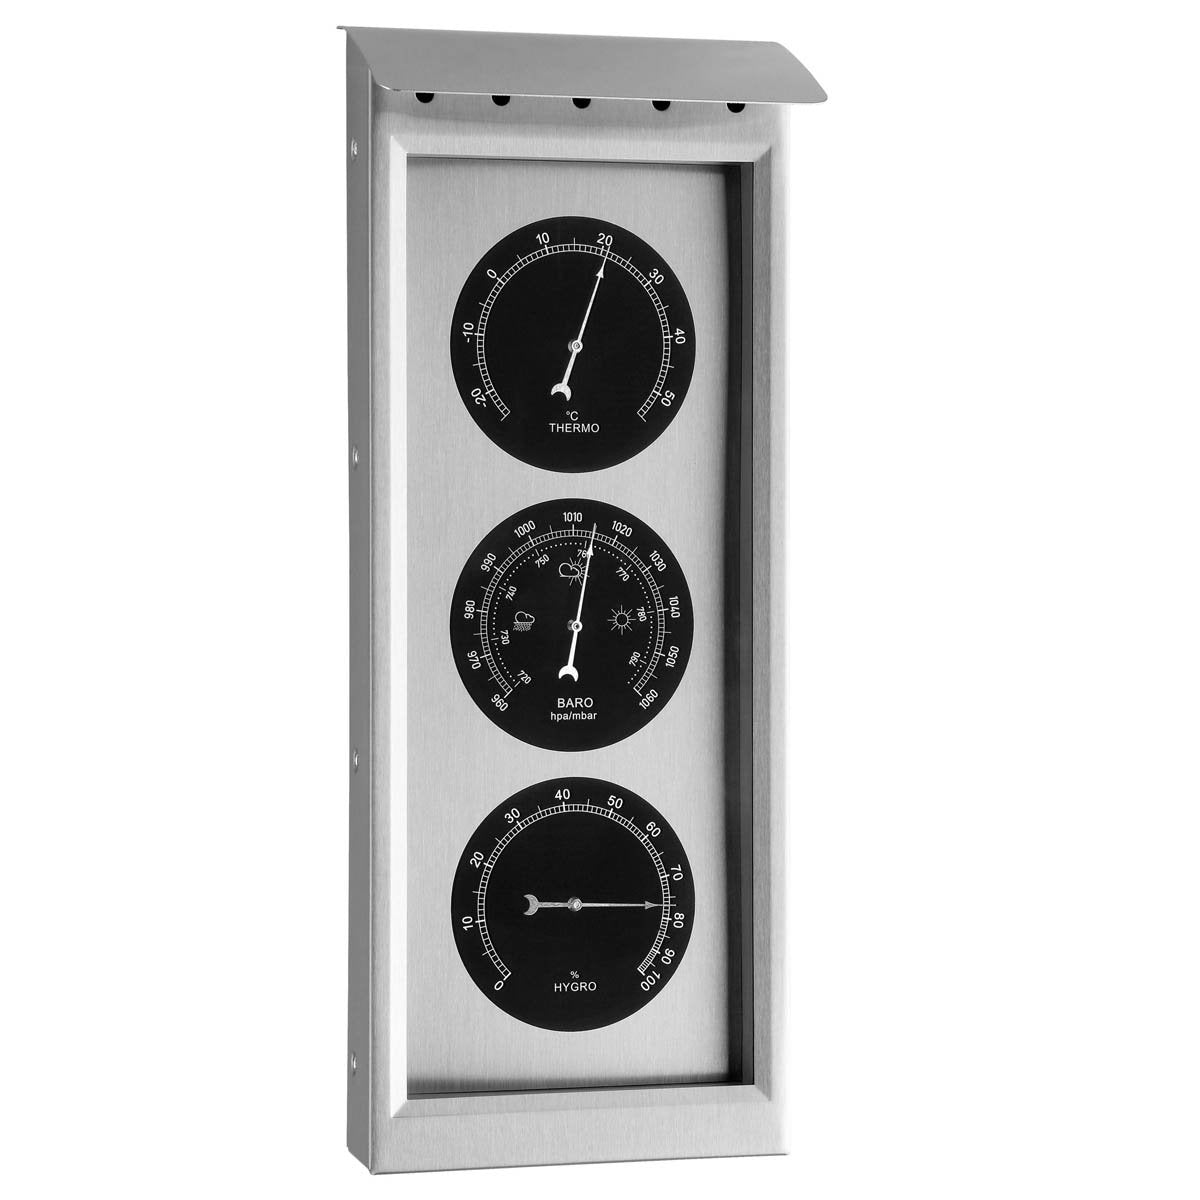 TFA Kyrie Outdoor Stainless Steel Weather Station, Silver, 36cm